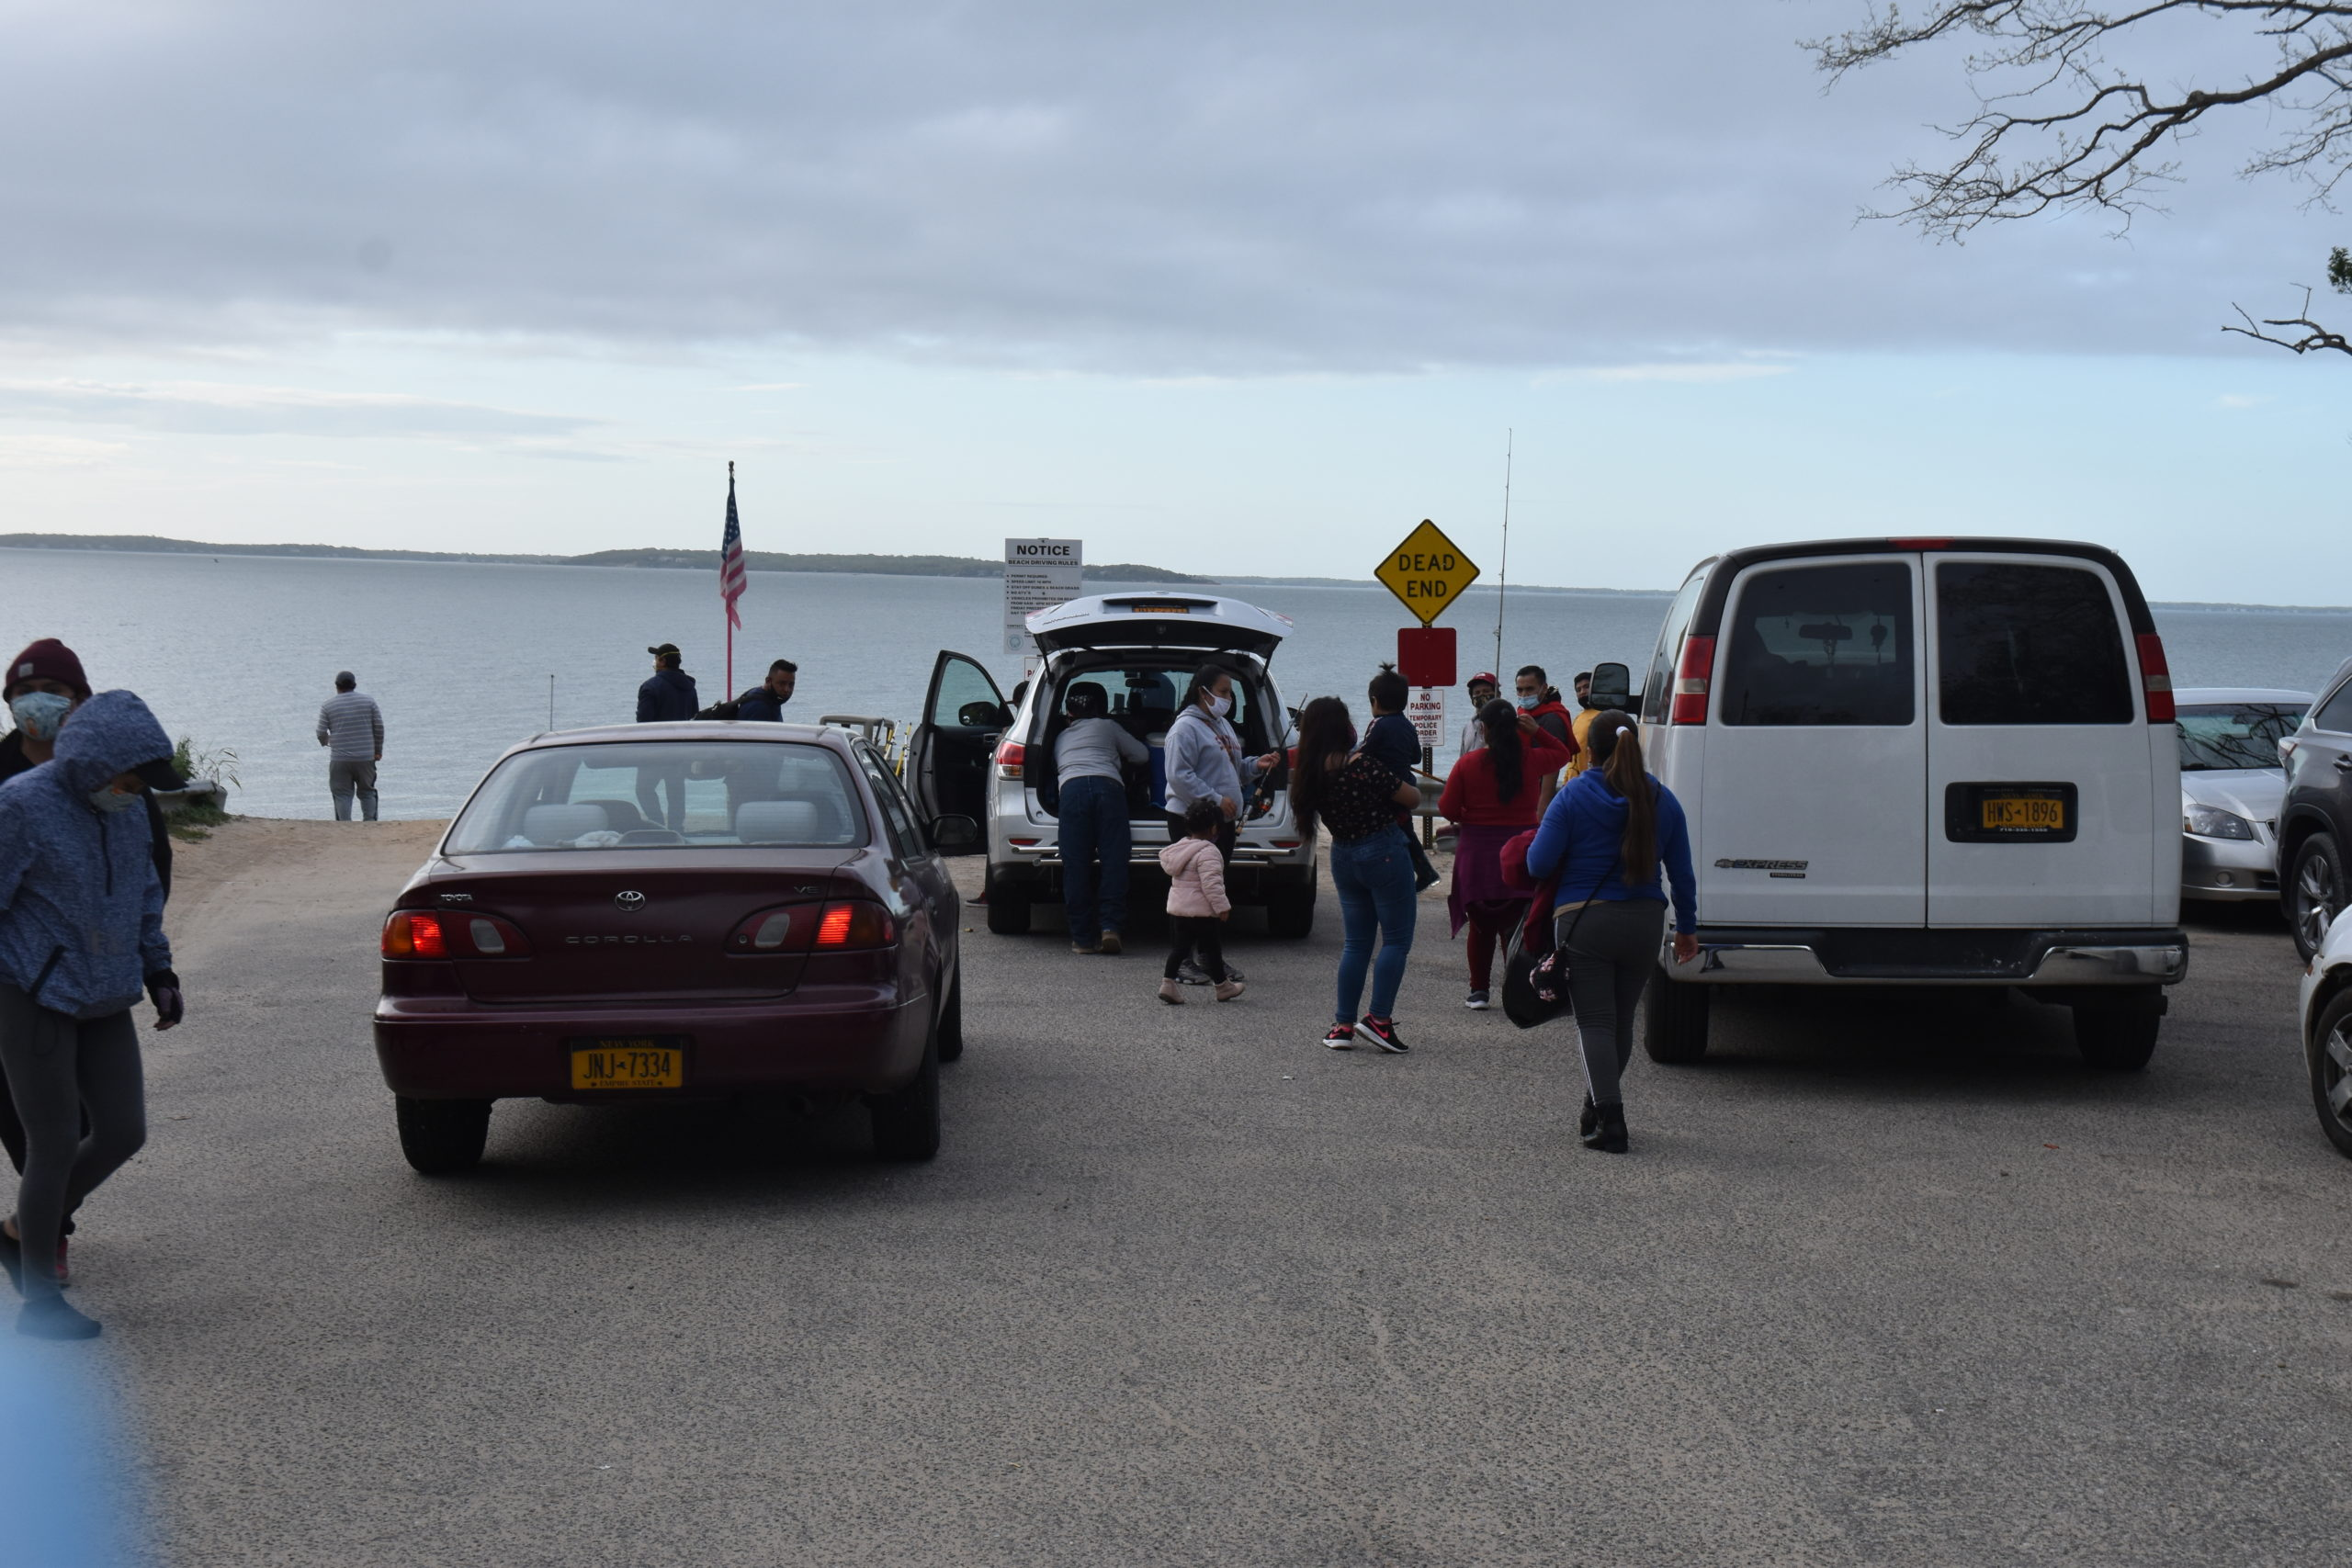 Families, many of whom said they drove out from Queens and Brooklyn, arrive at North Sea Beach Friday night. STEPHEN J. KOTZ